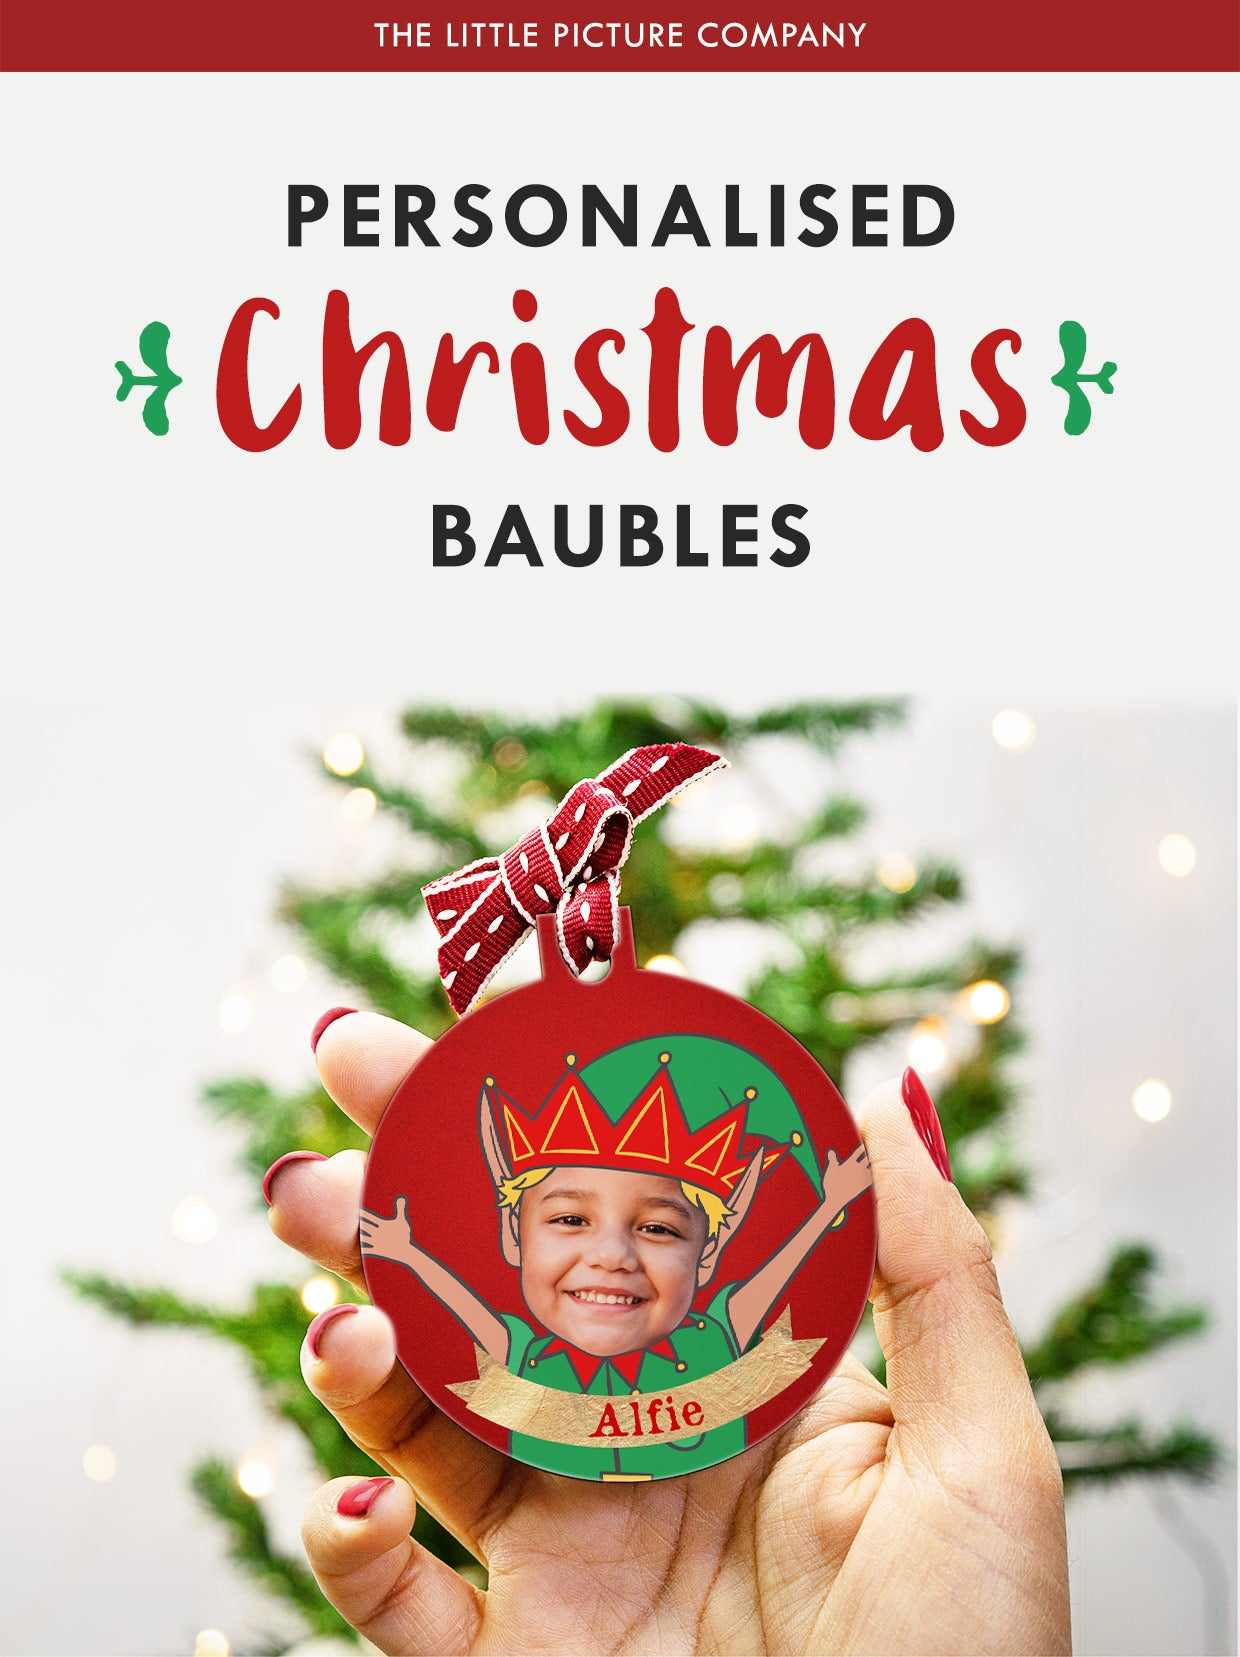 Unique Personalised Christmas Baubles with photos